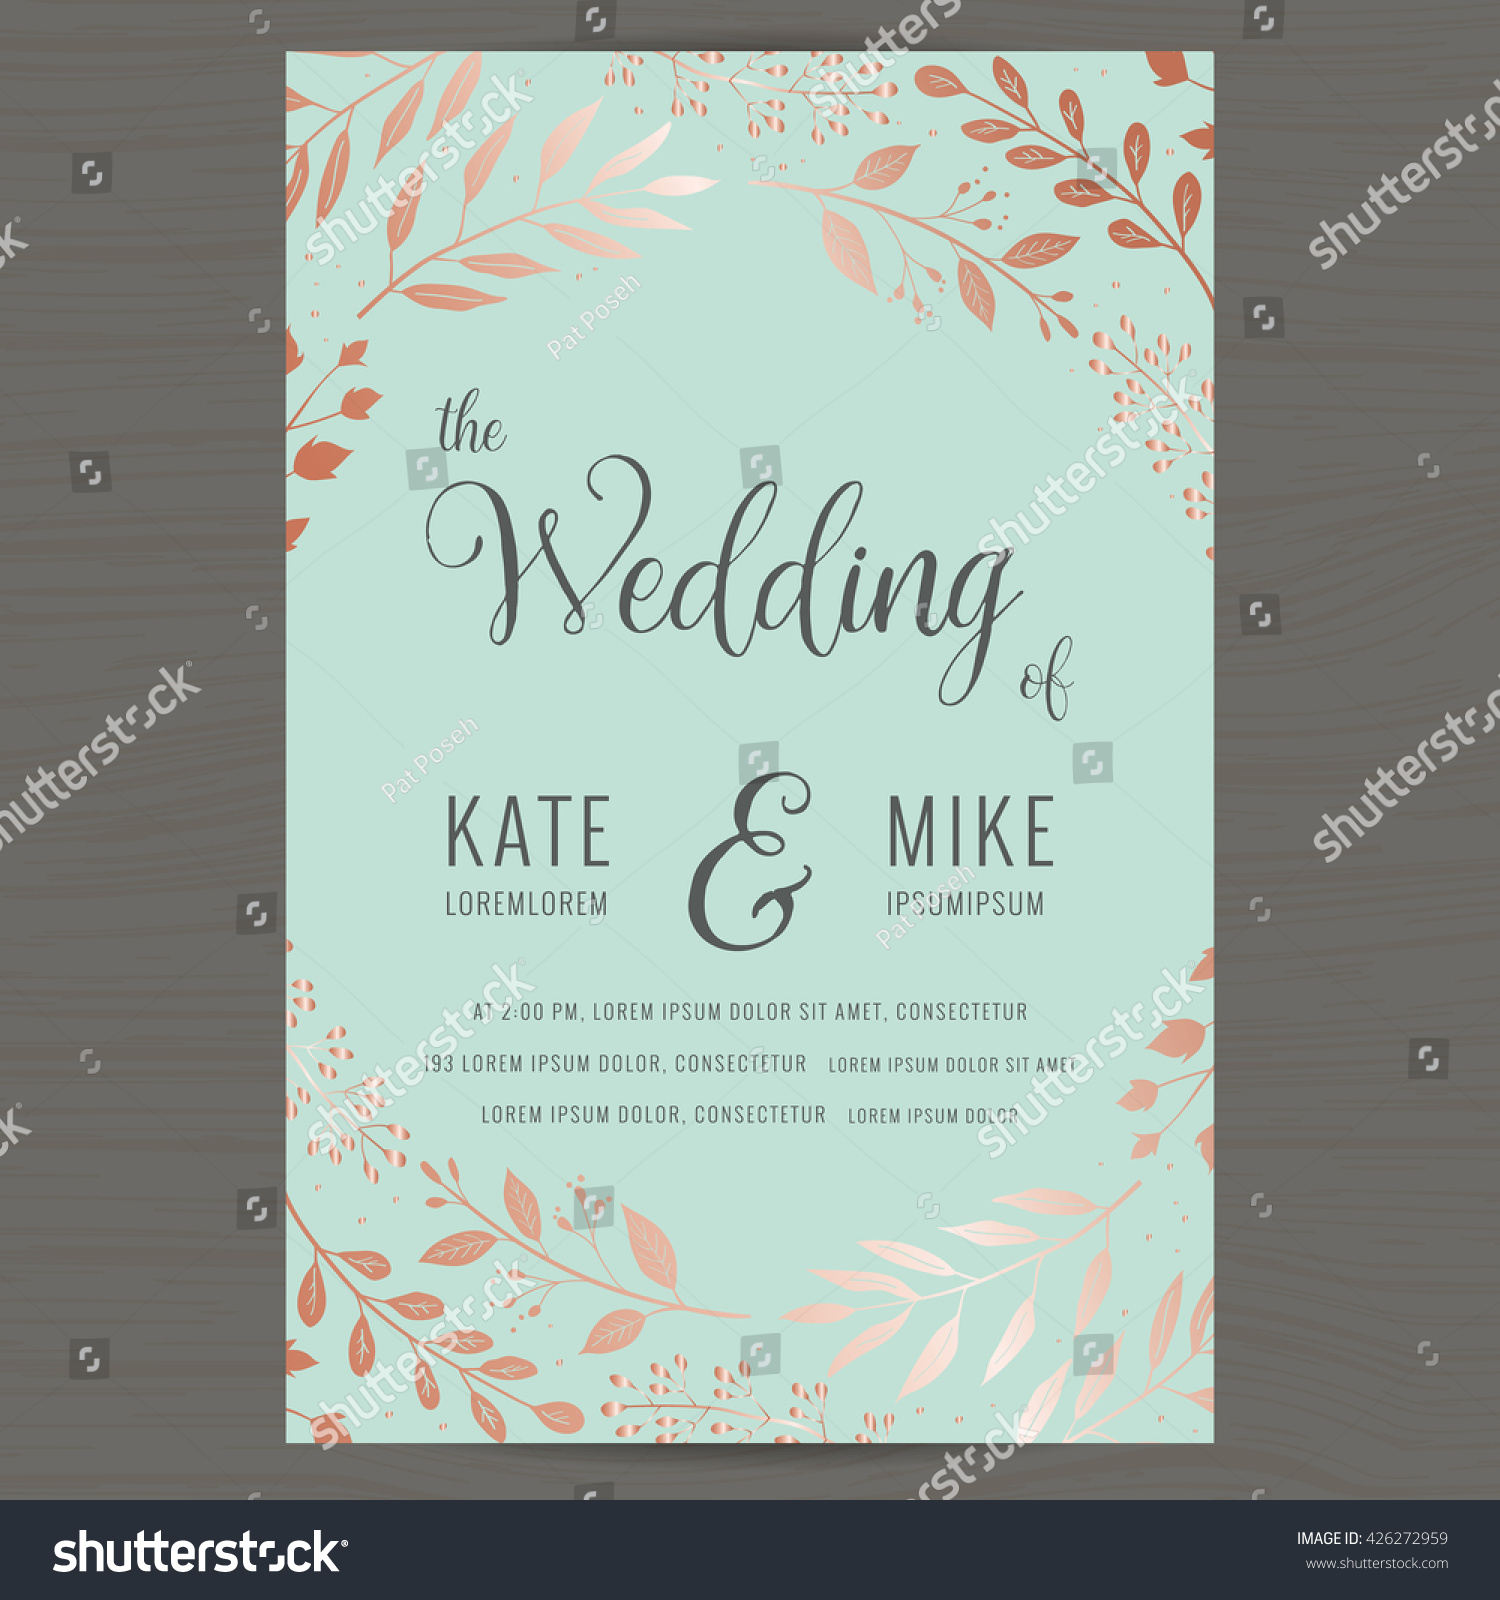 save date wedding invitation card template vectores en stock 426272959 shutterstock. Black Bedroom Furniture Sets. Home Design Ideas